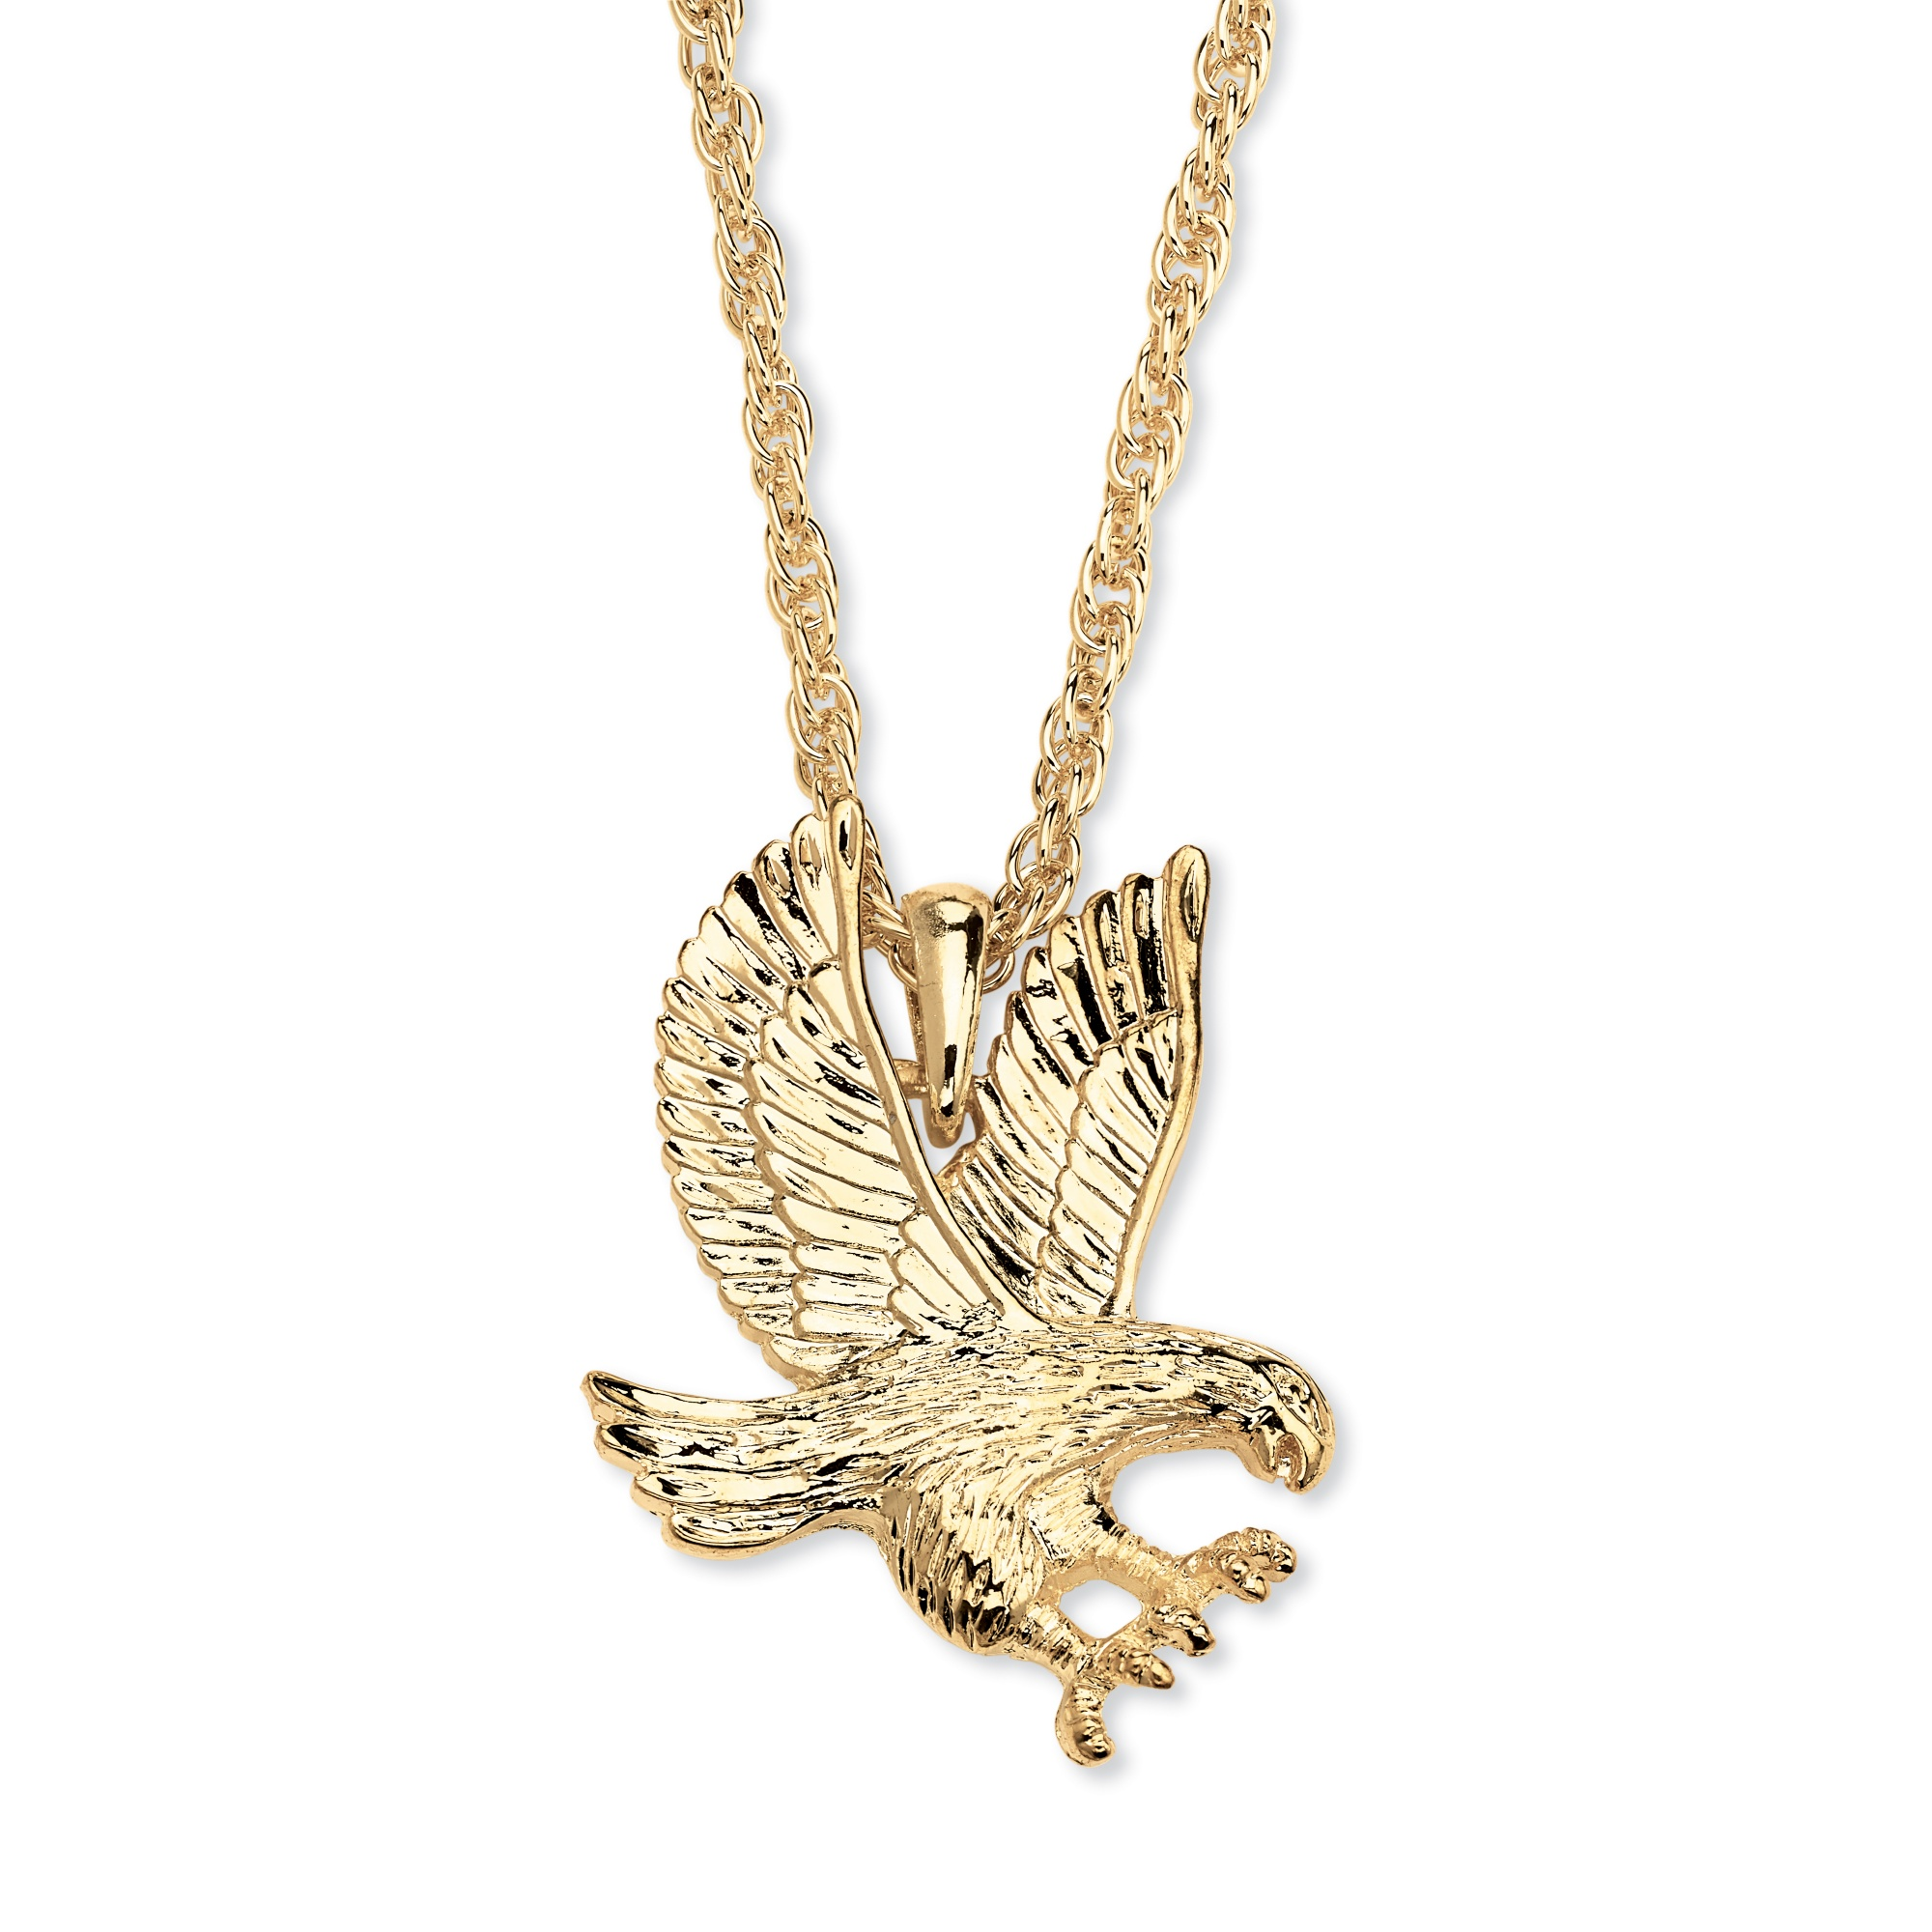 Mens yellow gold tone eagle pendant rope chain necklace 24 at mens yellow gold tone eagle pendant rope chain necklace 24 at palmbeach jewelry aloadofball Image collections